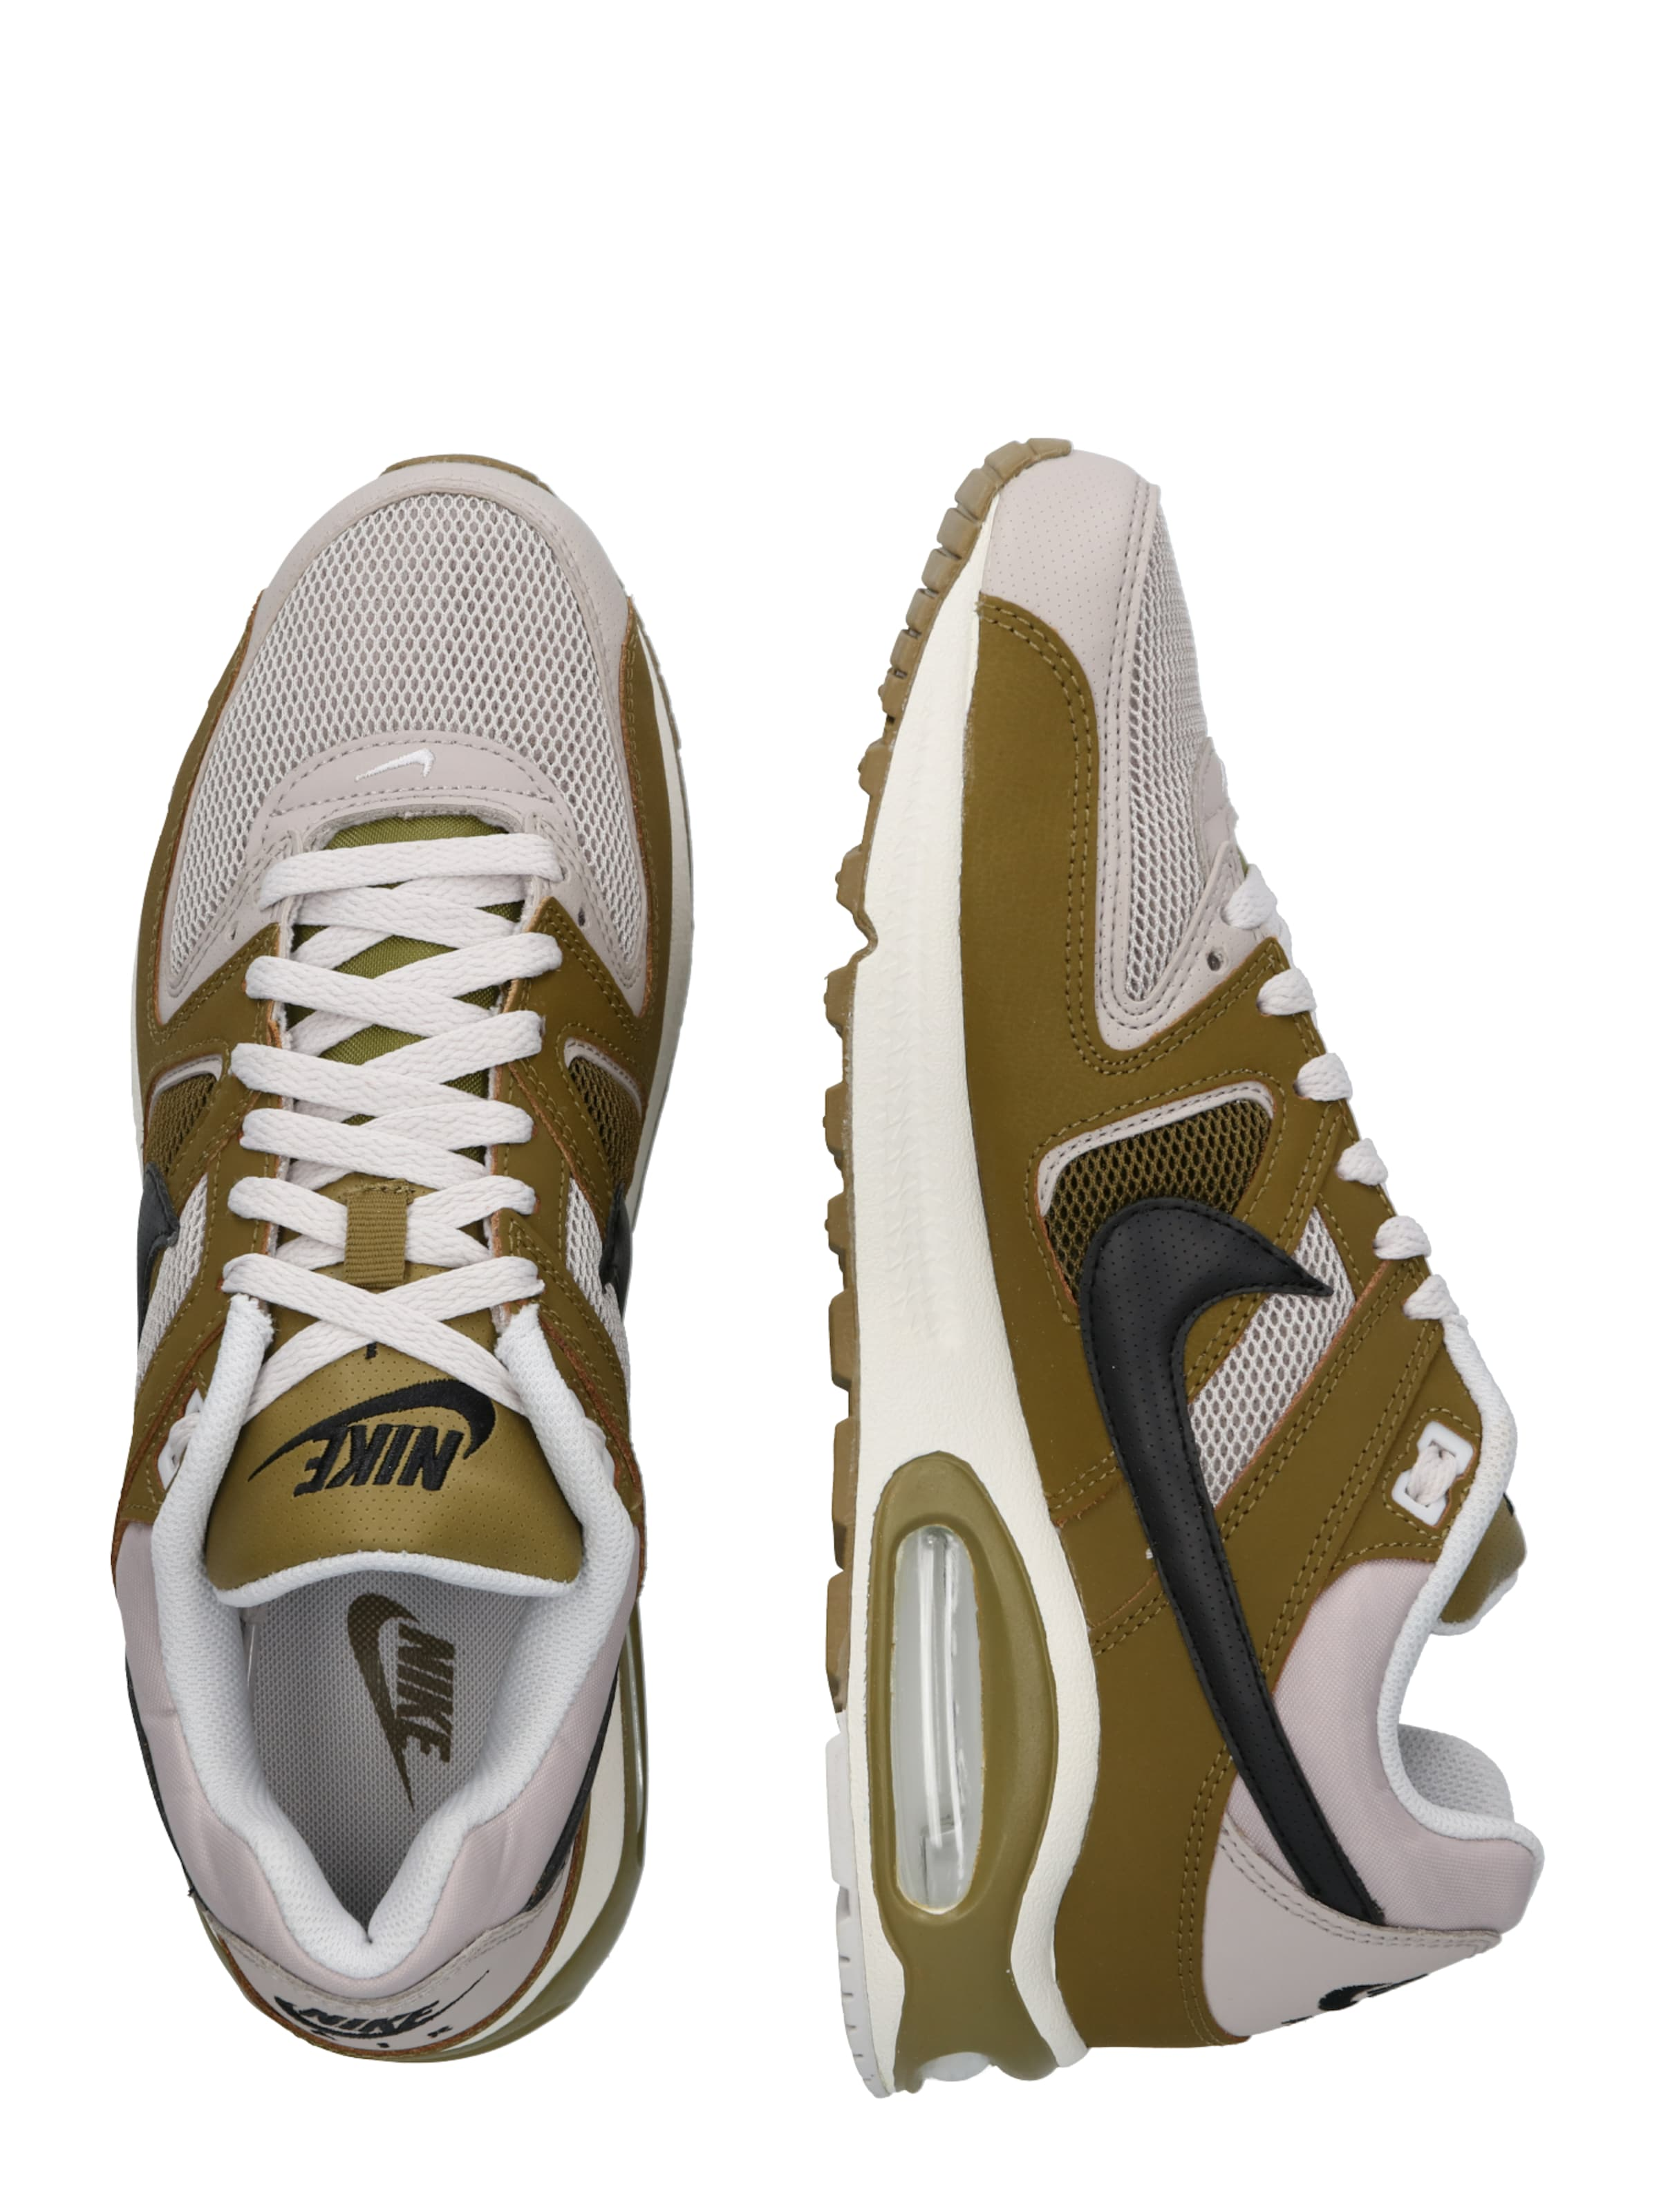 HellgrauOliv Max Nike Command' Sneaker In Sportswear 'air OukPZTXi